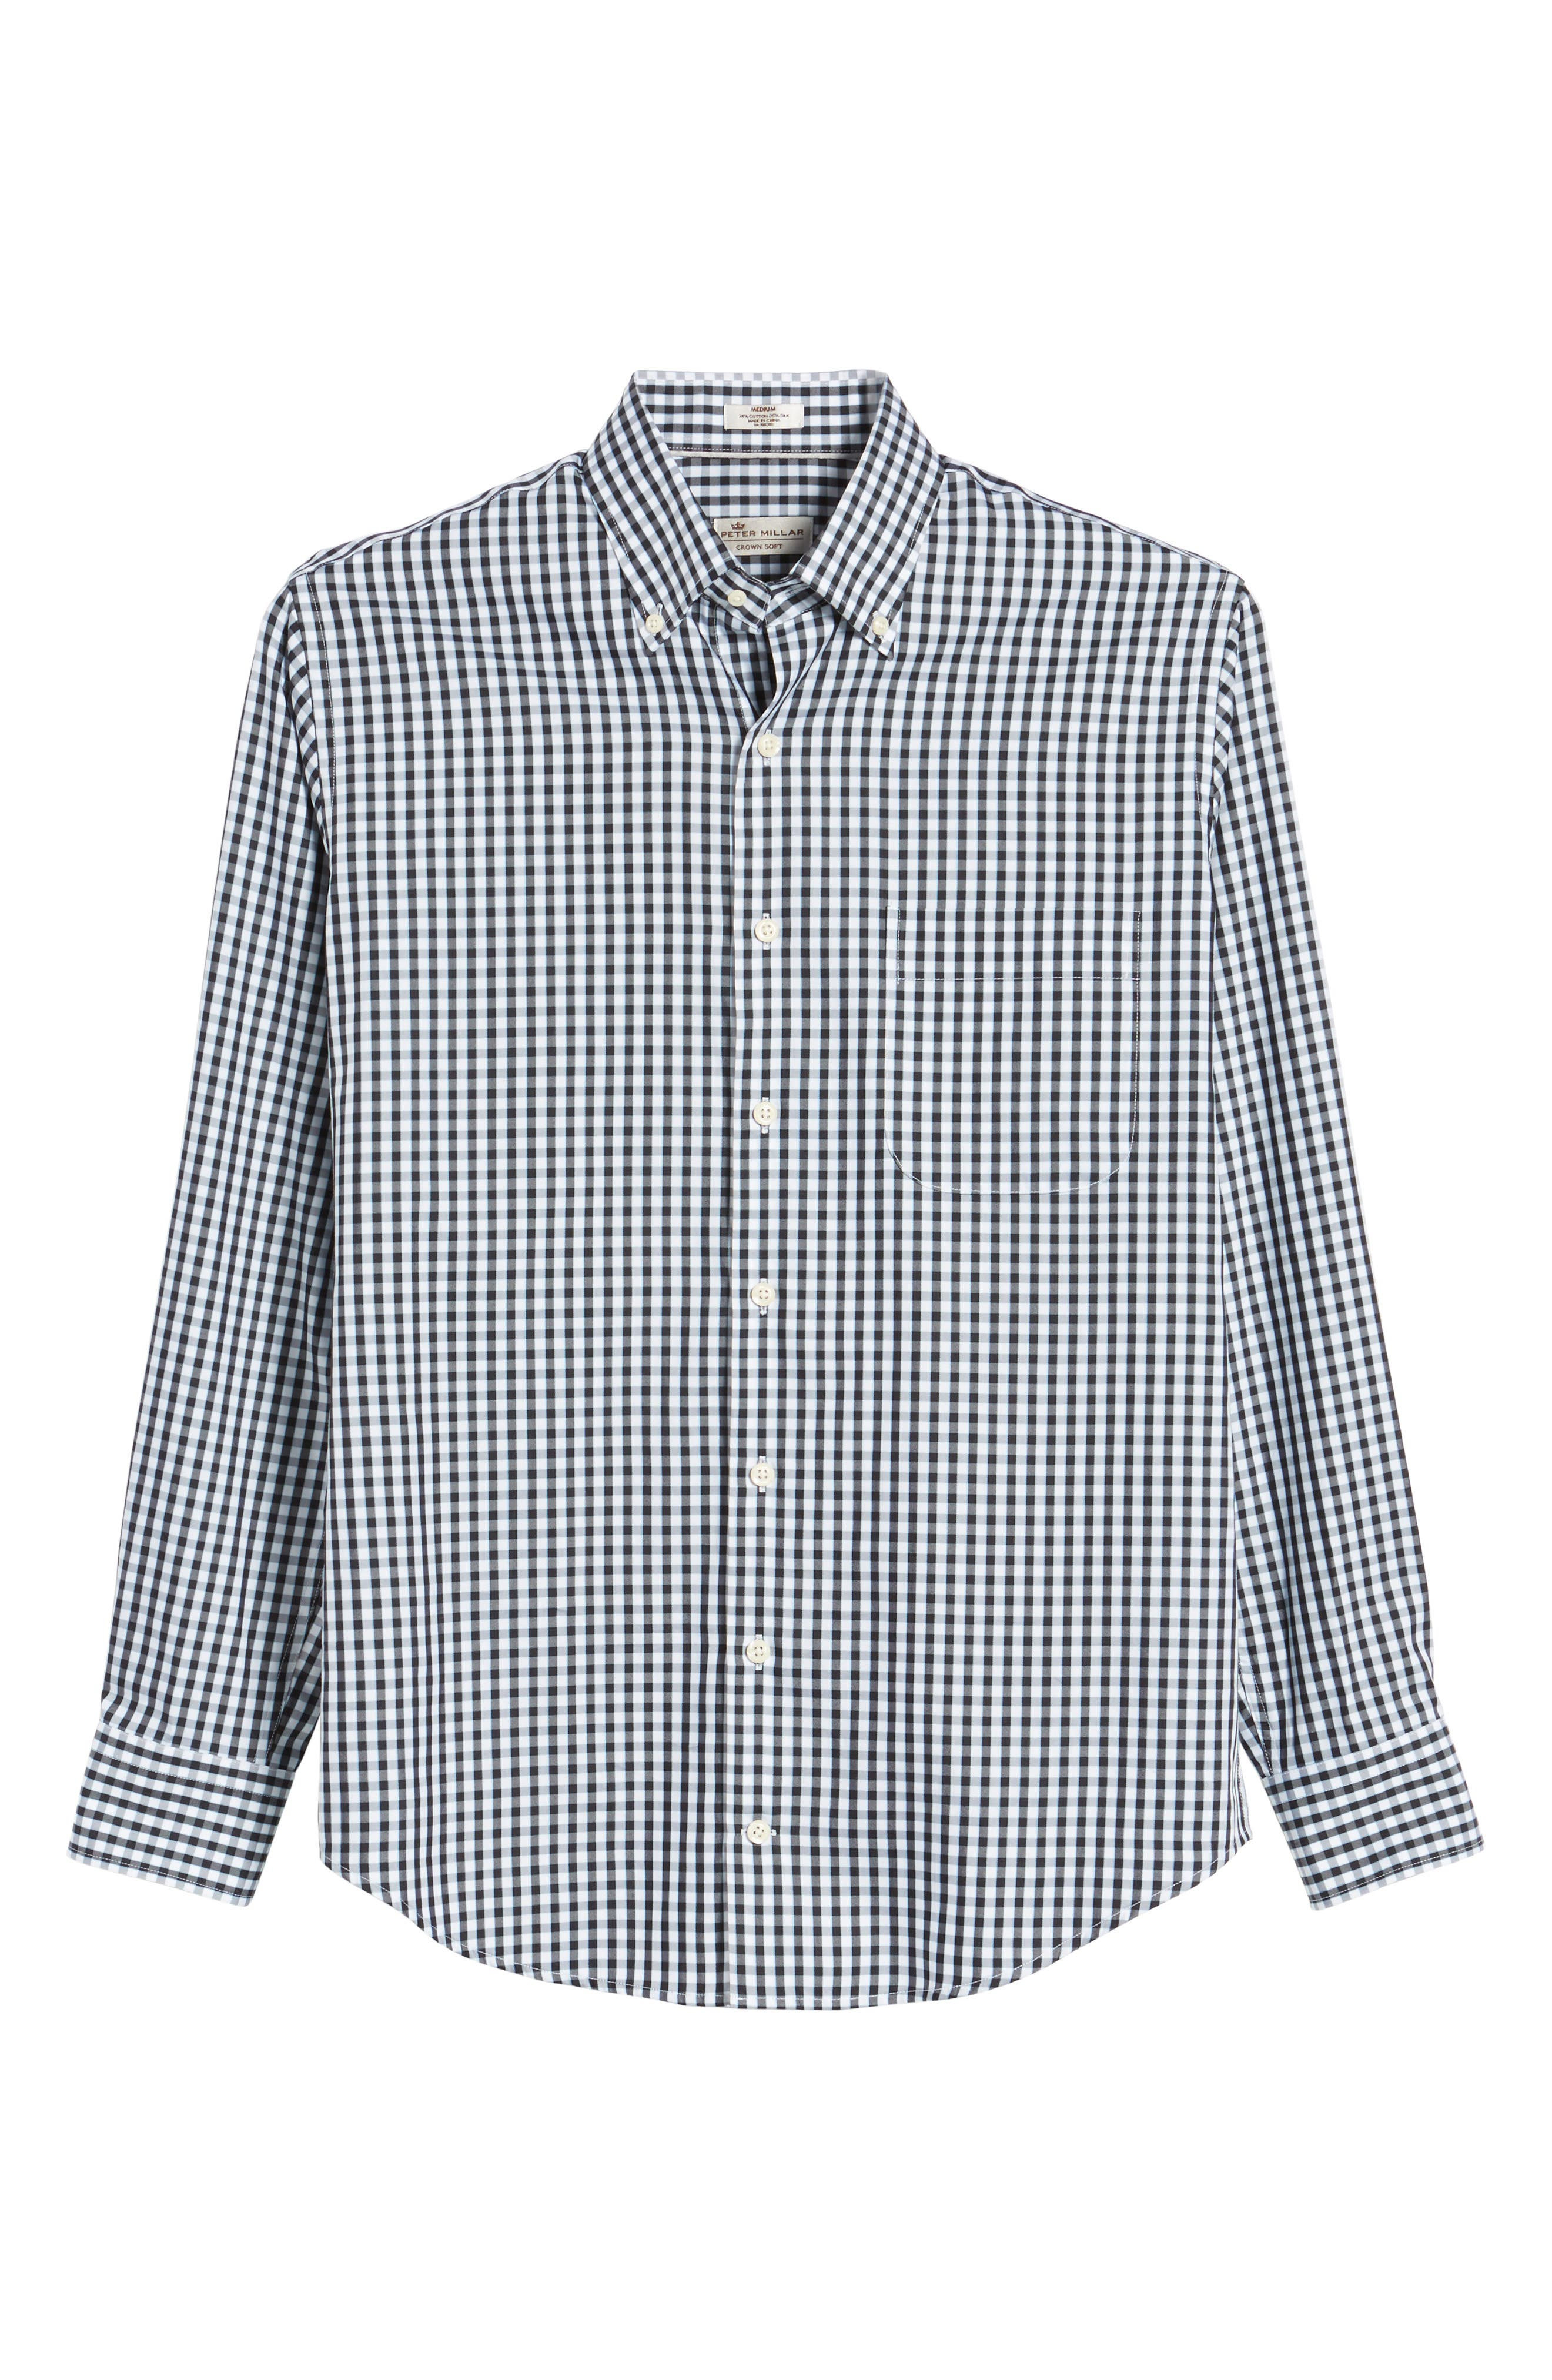 Black Sand Classic Fit Gingham Check Sport Shirt,                             Alternate thumbnail 6, color,                             BLACK